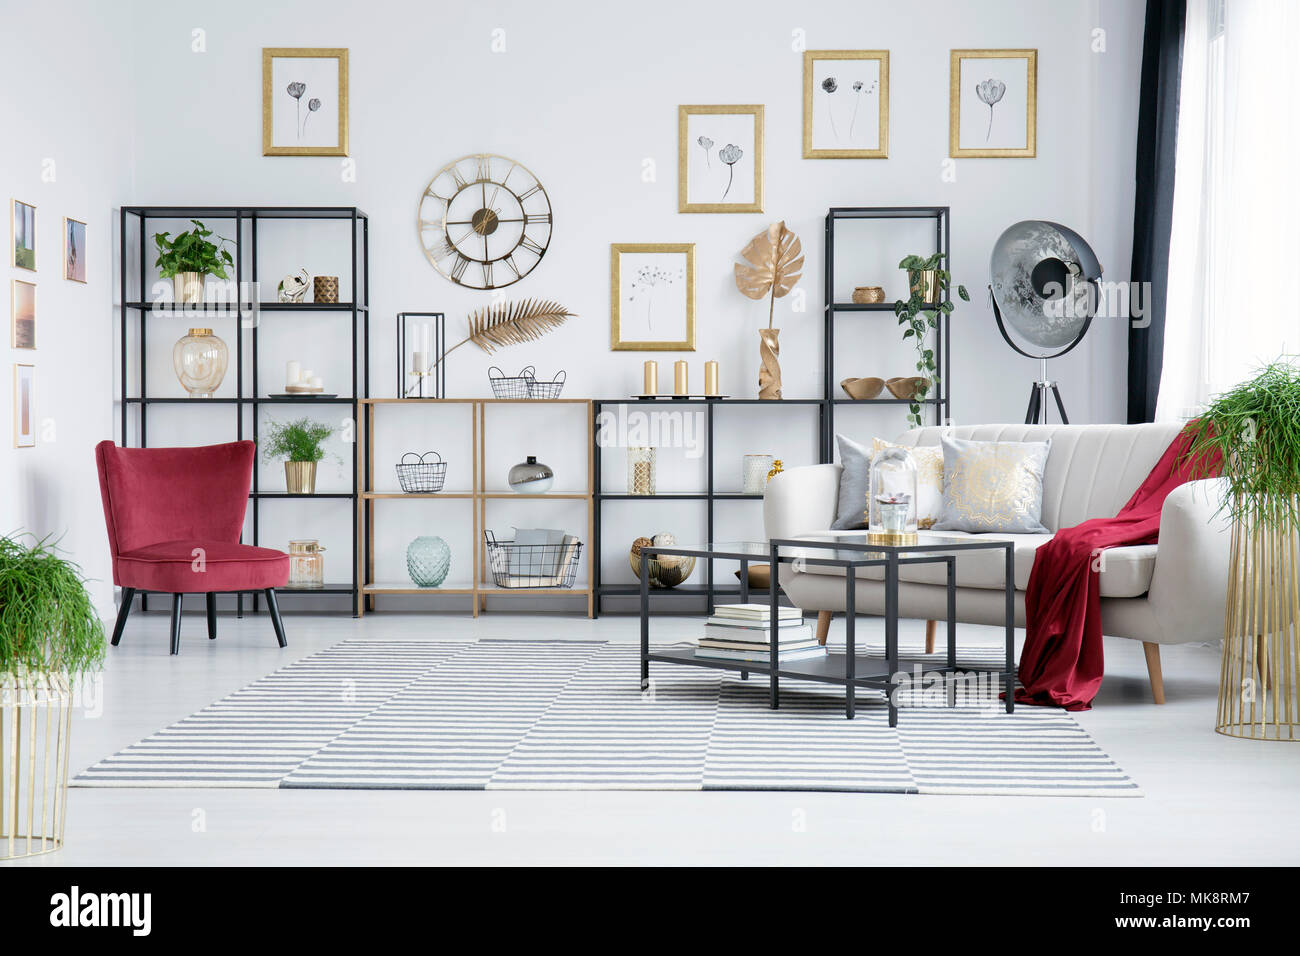 Awe Inspiring Elegant Living Room Interior With Striped Rug Metal Tables Beatyapartments Chair Design Images Beatyapartmentscom